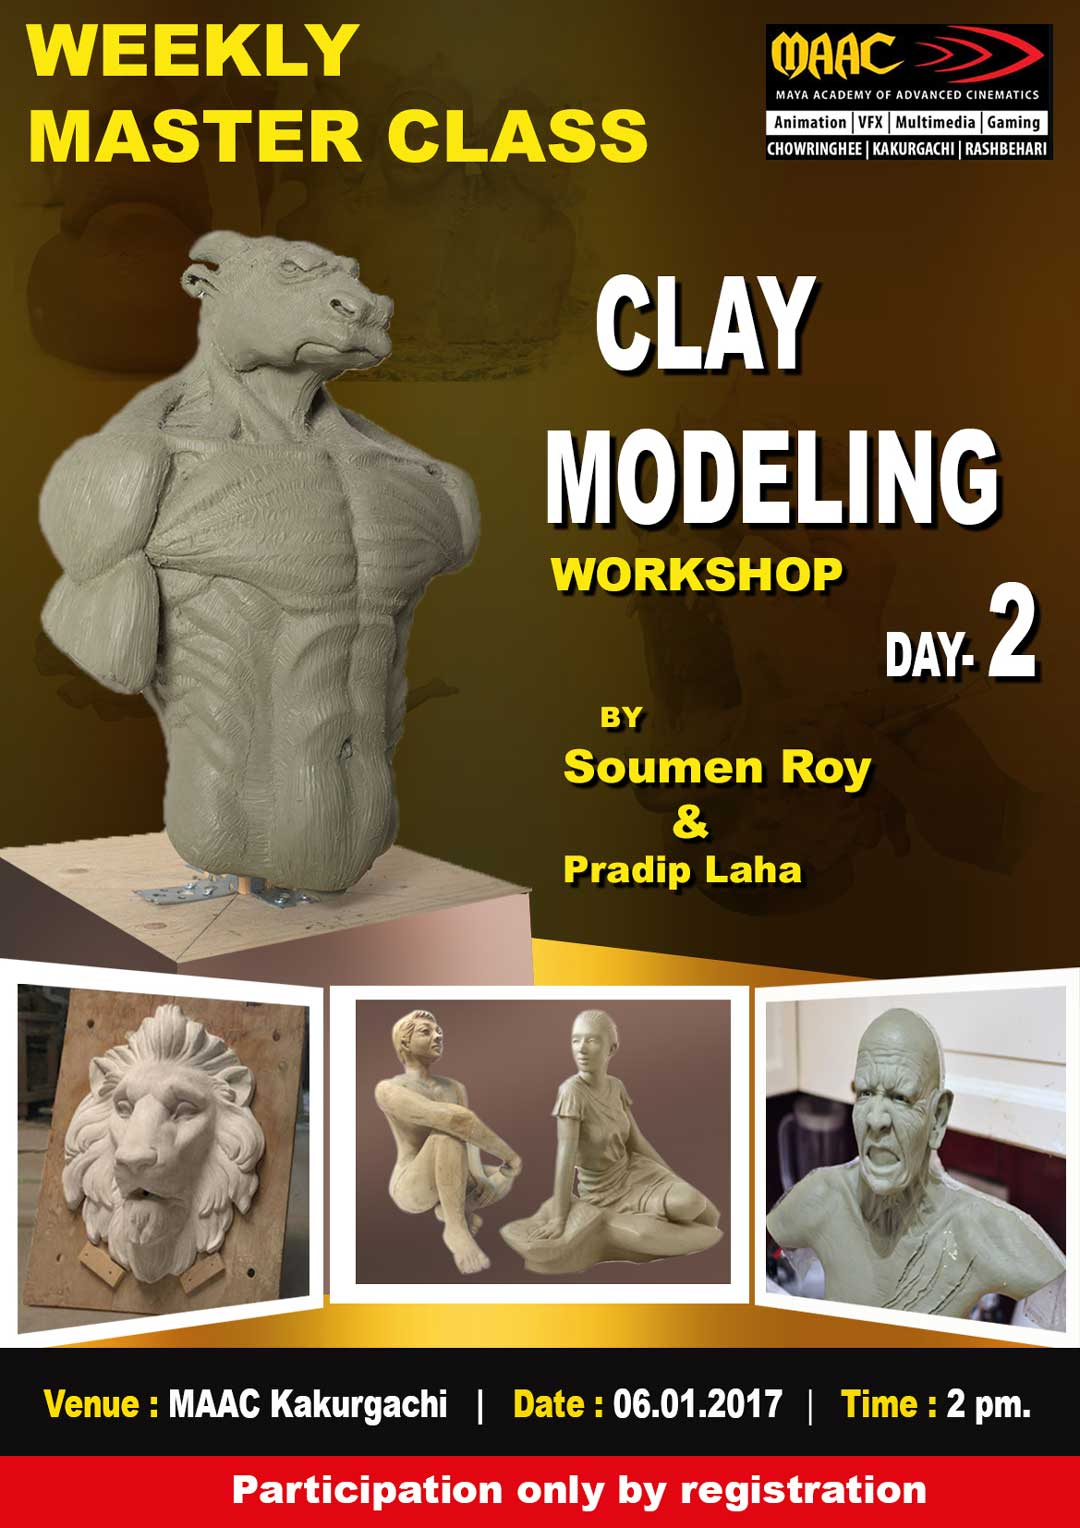 Weekly Master Class on Clay Modelling Day-2 - Soumen Roy & Pradip Laha